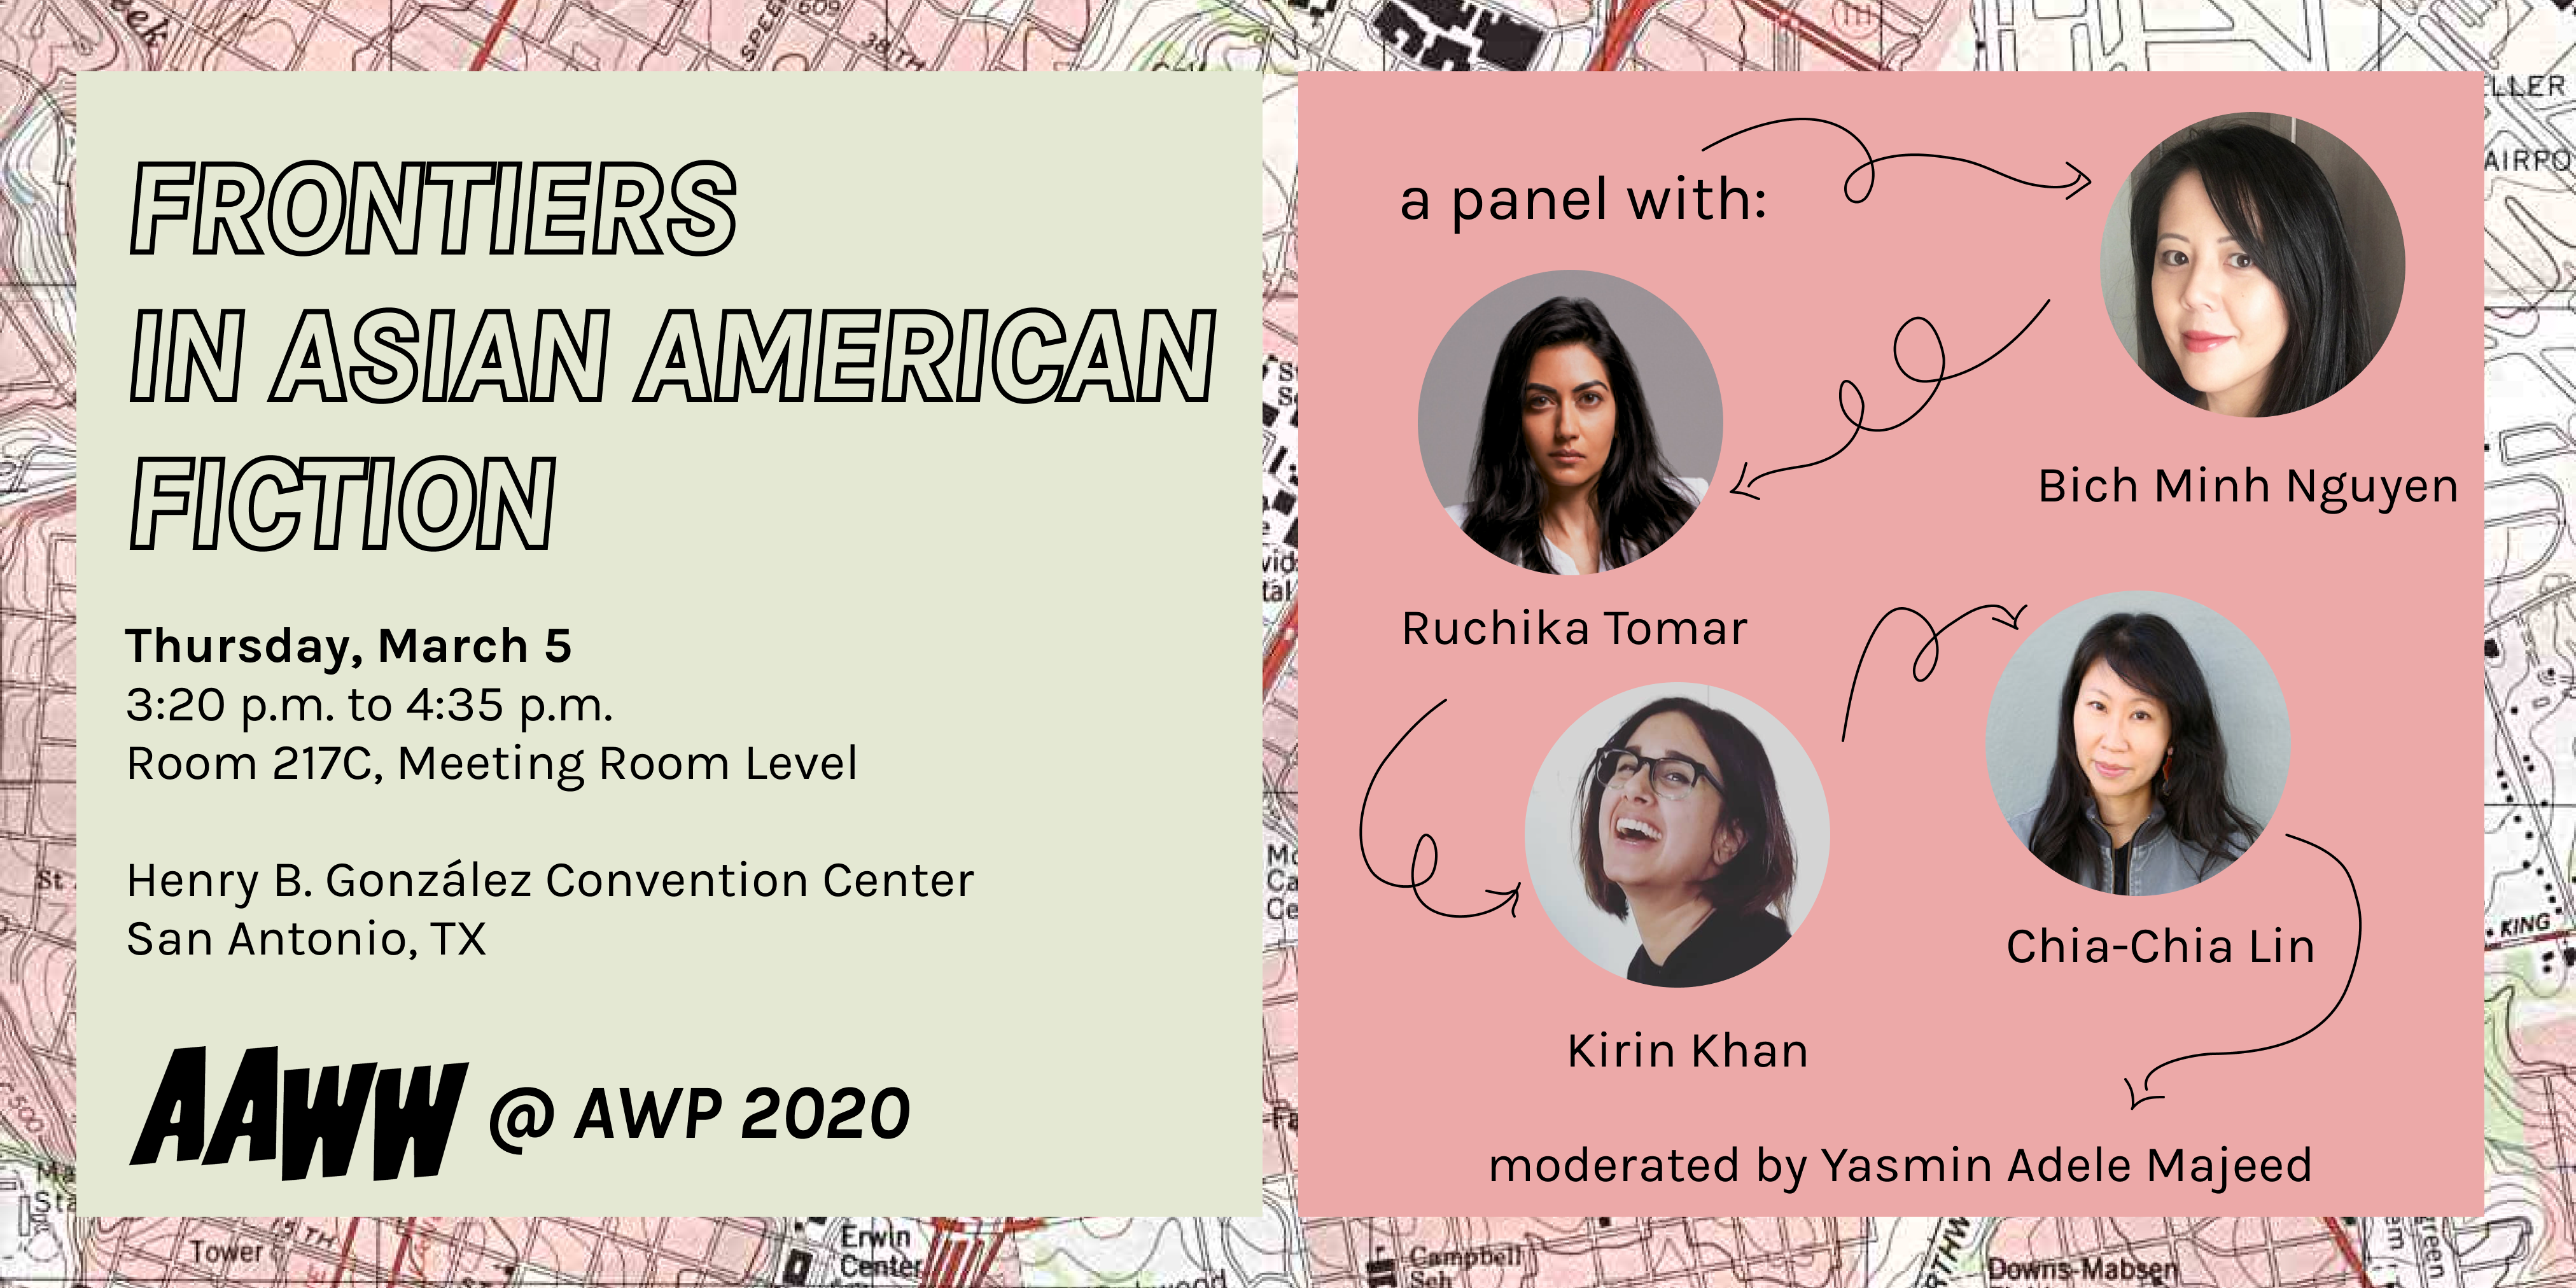 AAWW at AWP: Frontiers in Asian American Fiction